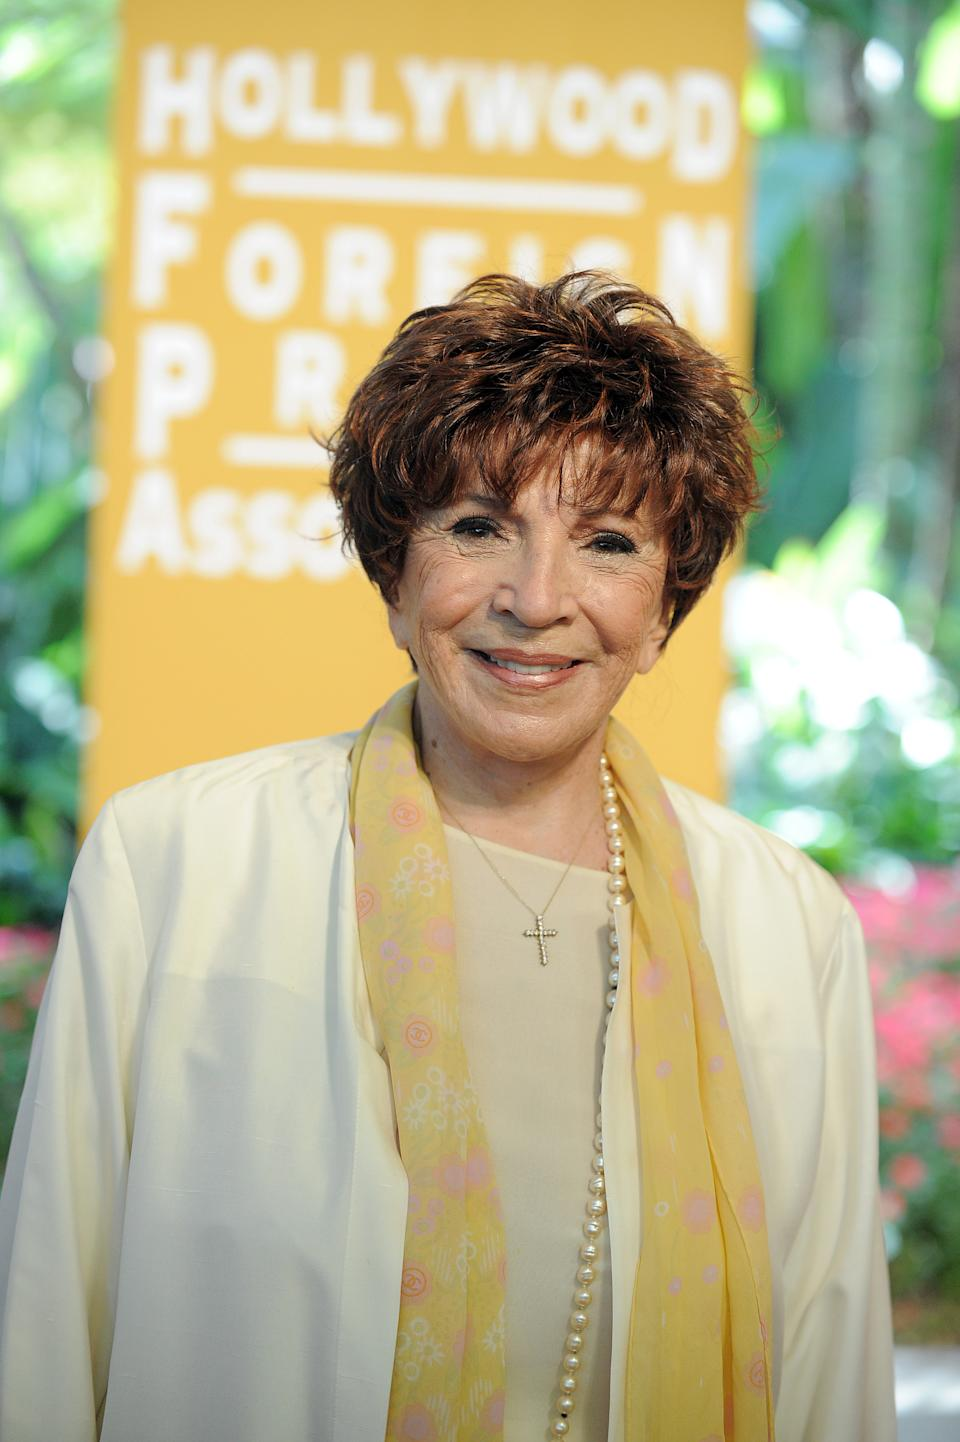 HFPA President Dr. Aida Takla-O Reilly attends the Hollywood Foreign Press Association luncheon at the Beverly Hills Hotel on Thursday, Aug. 9, 2012, in Beverly Hills, Calif. (Photo by Jordan Strauss/Invision/AP)